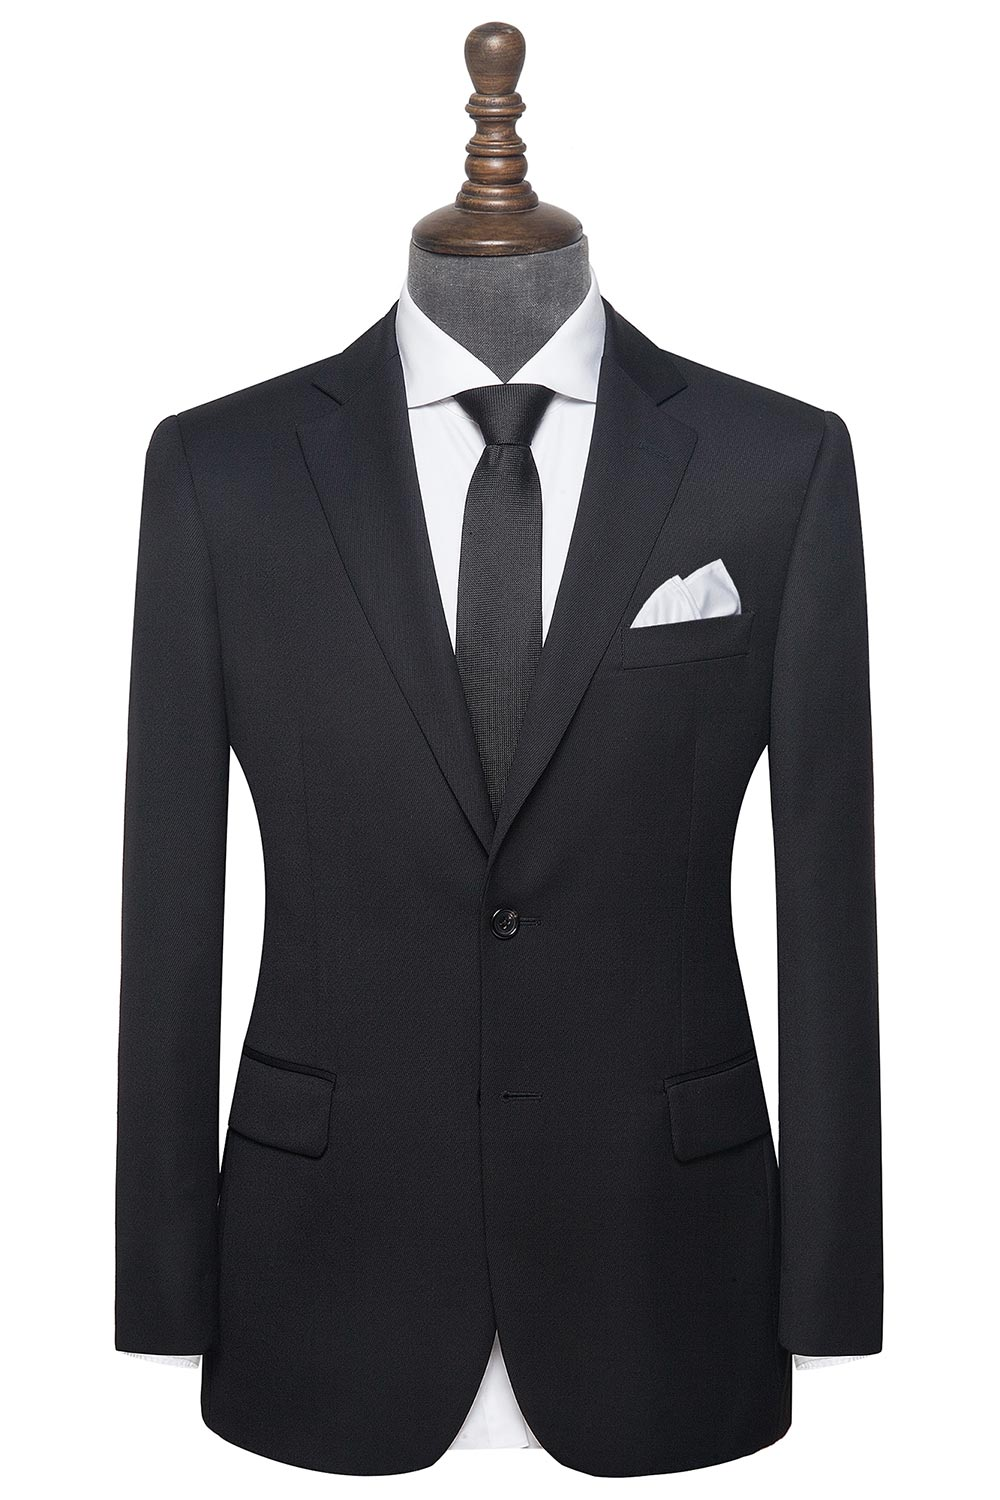 InStitchu Collection The Alfie Black Plain mens suit